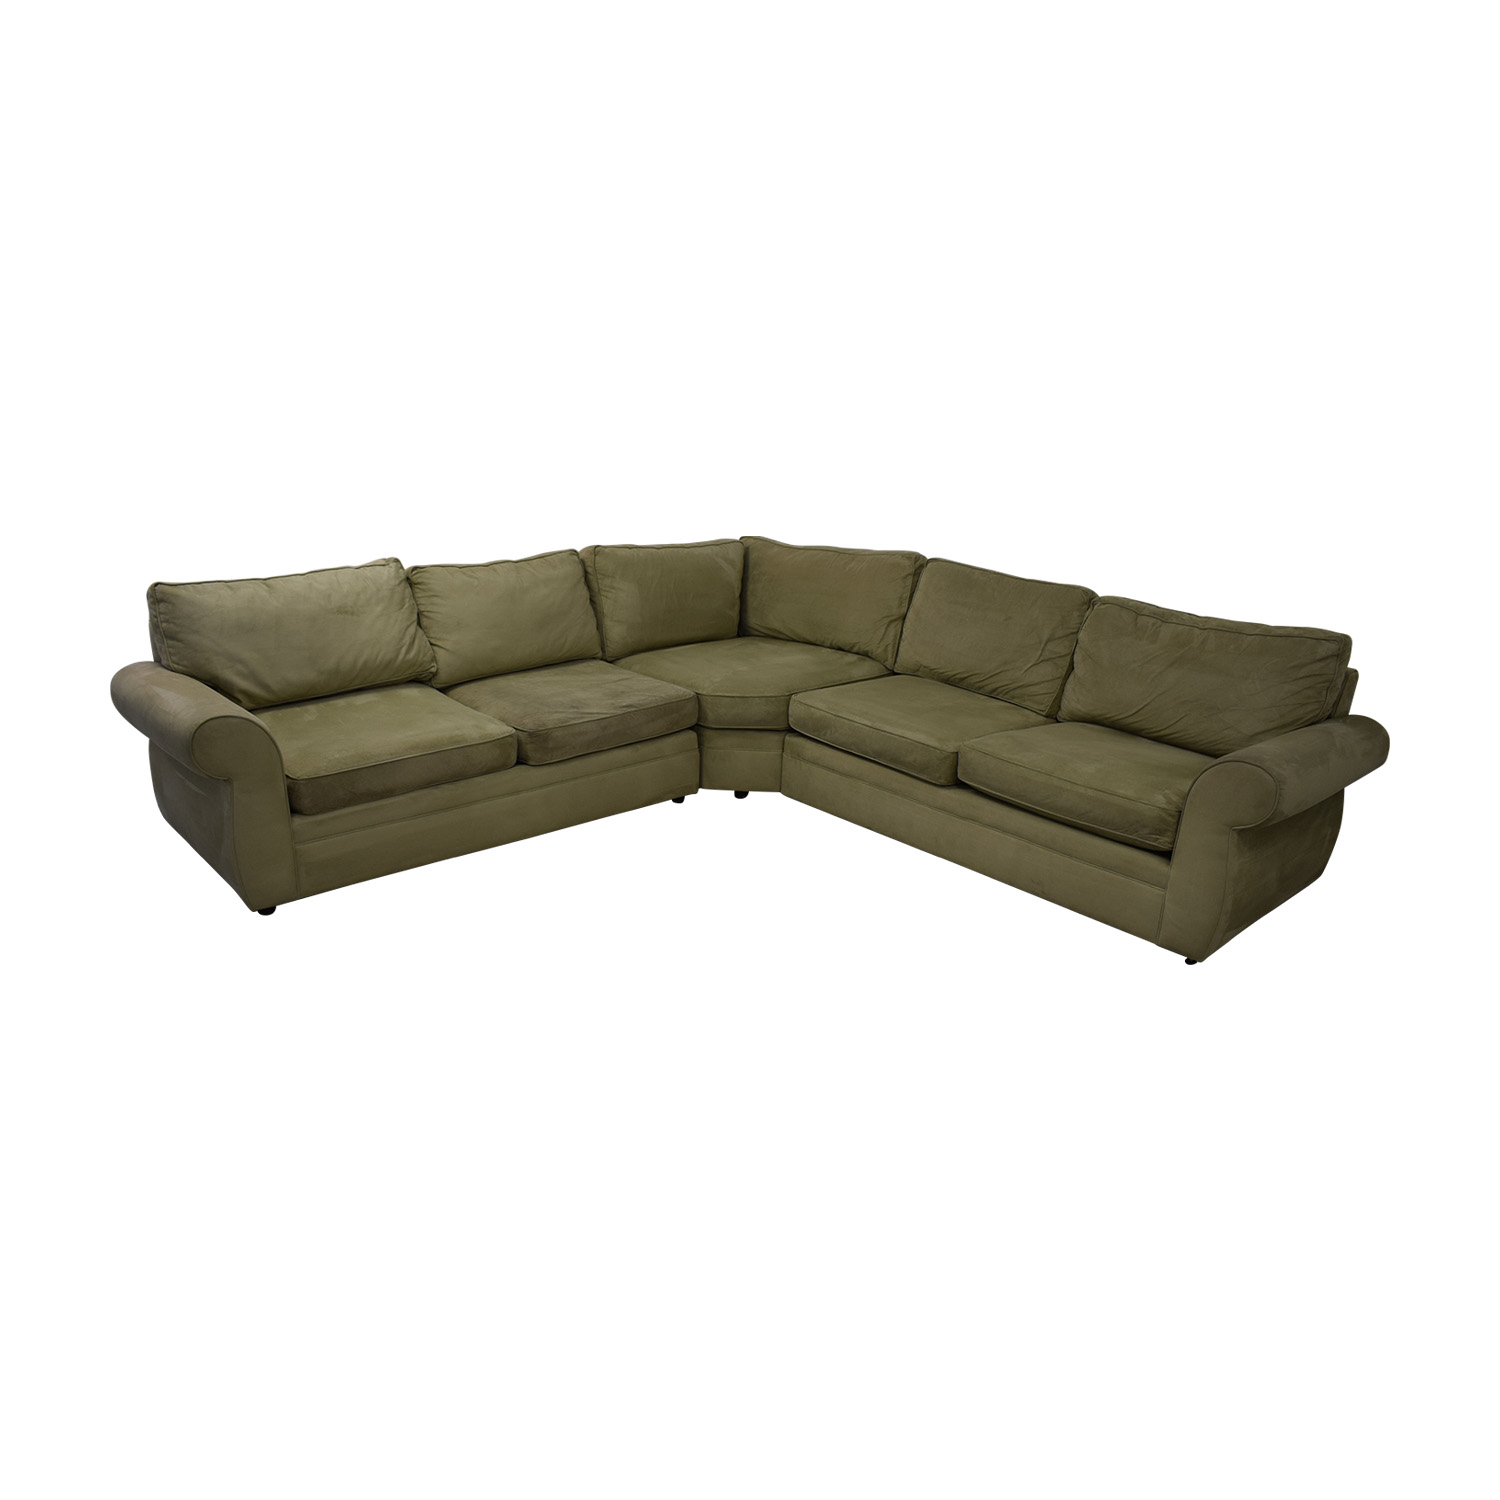 Pottery Barn Pottery Barn Pearce Beige L-Shaped Sectional coupon